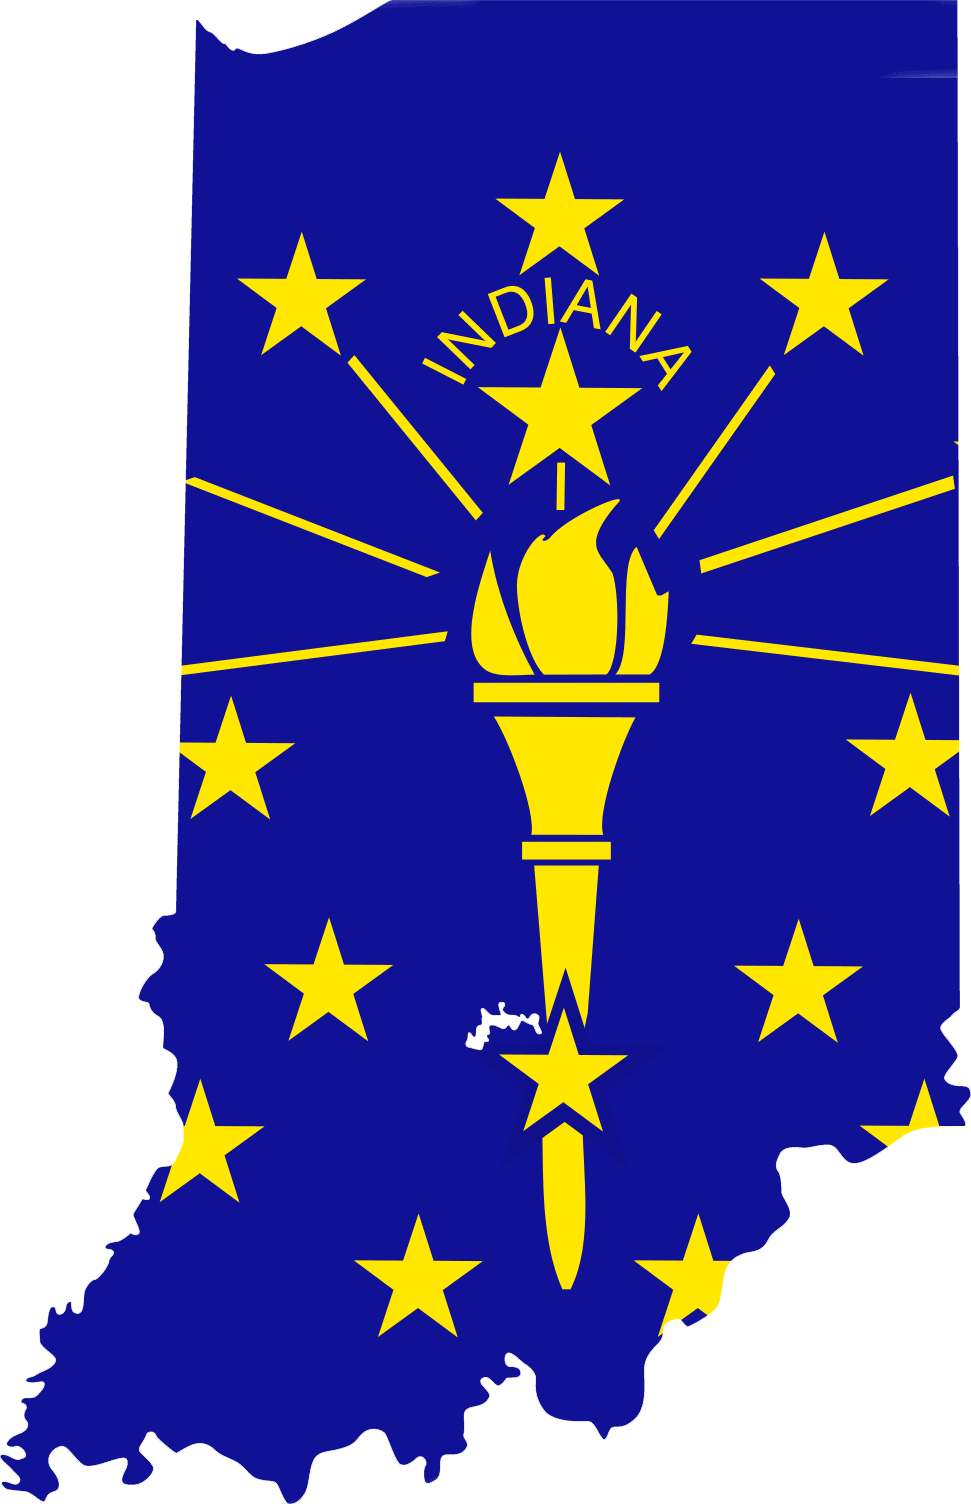 Indiana Is A Beautiful State Known For Their Quality Of People They Have A Devotion To Their Sports Teams And Their Co Indiana Flag Indiana State Flag Indiana